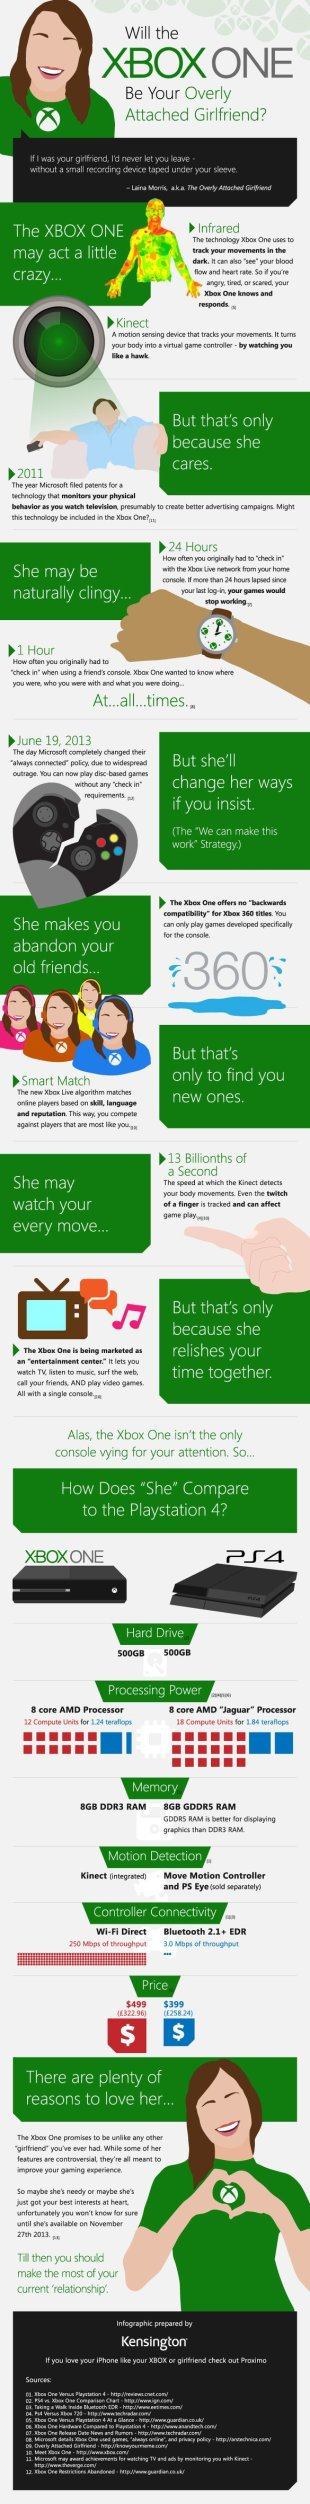 Will the Xbox One Be Your Overly Attached Girlfriend? [Infographic] image 7197667f1a47 5238 4e09 95ab 39c2f8912d65